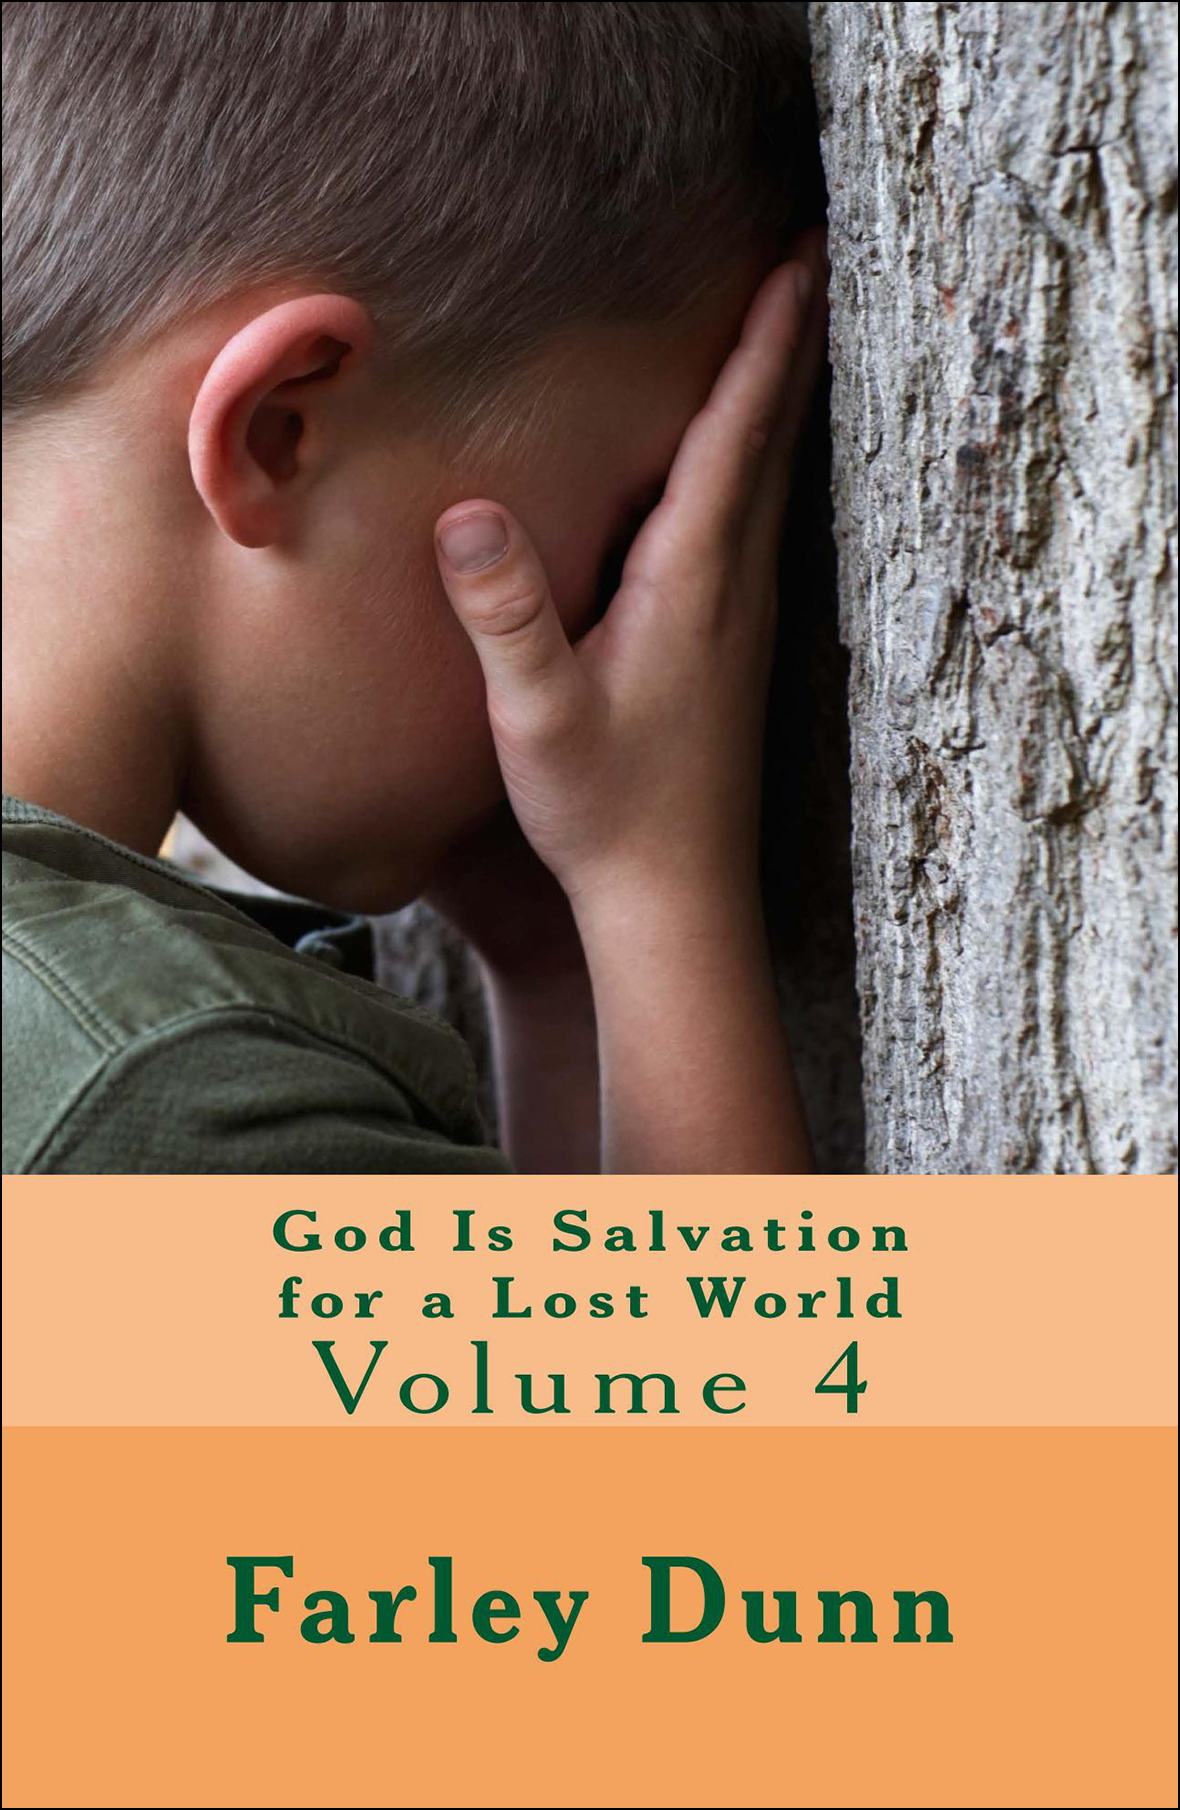 God Is Salvation for Cover for web insertion Vol 4